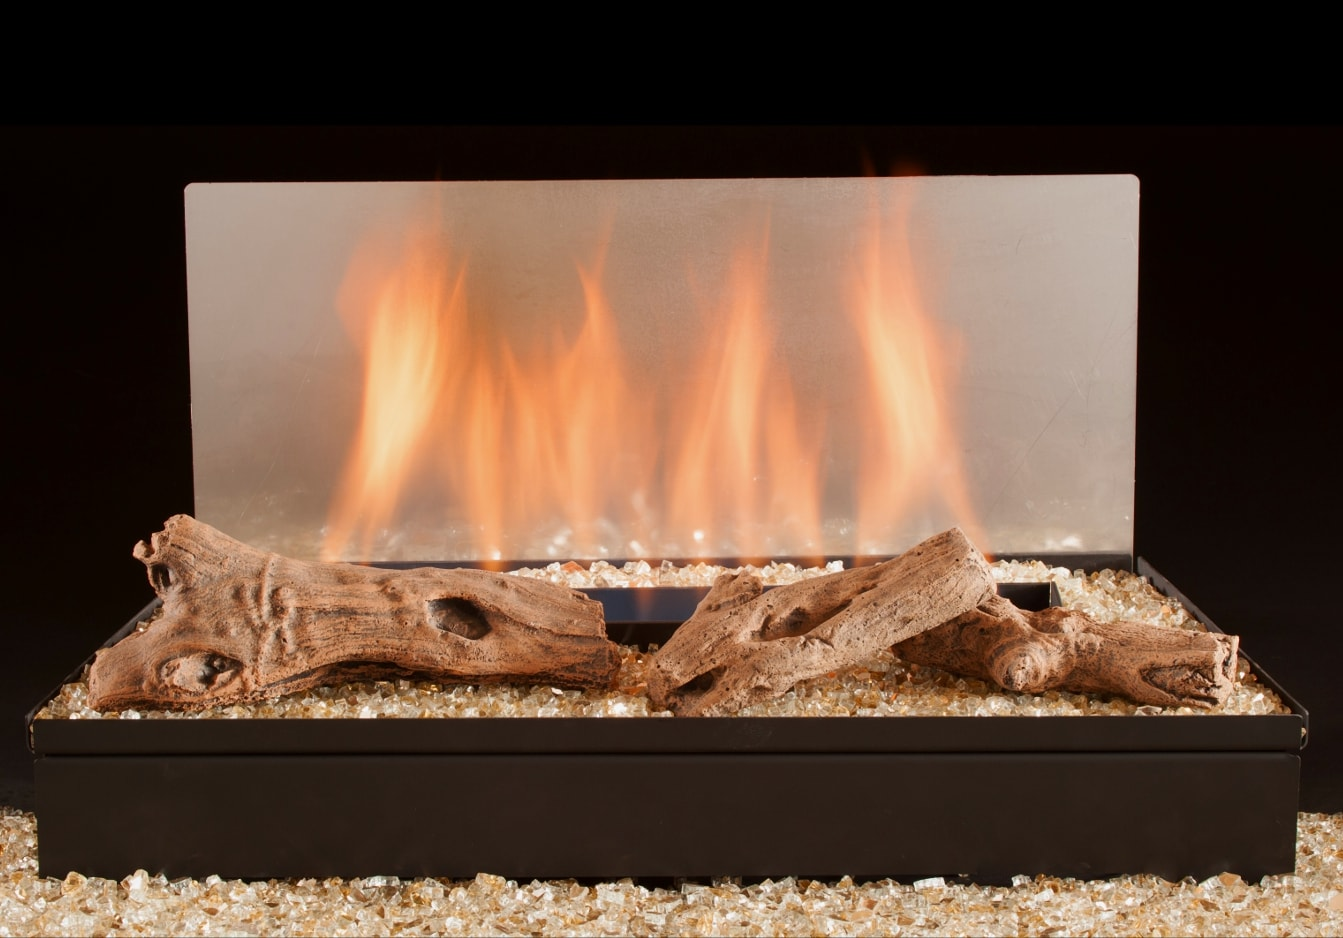 Fireplace Accessories FAQs